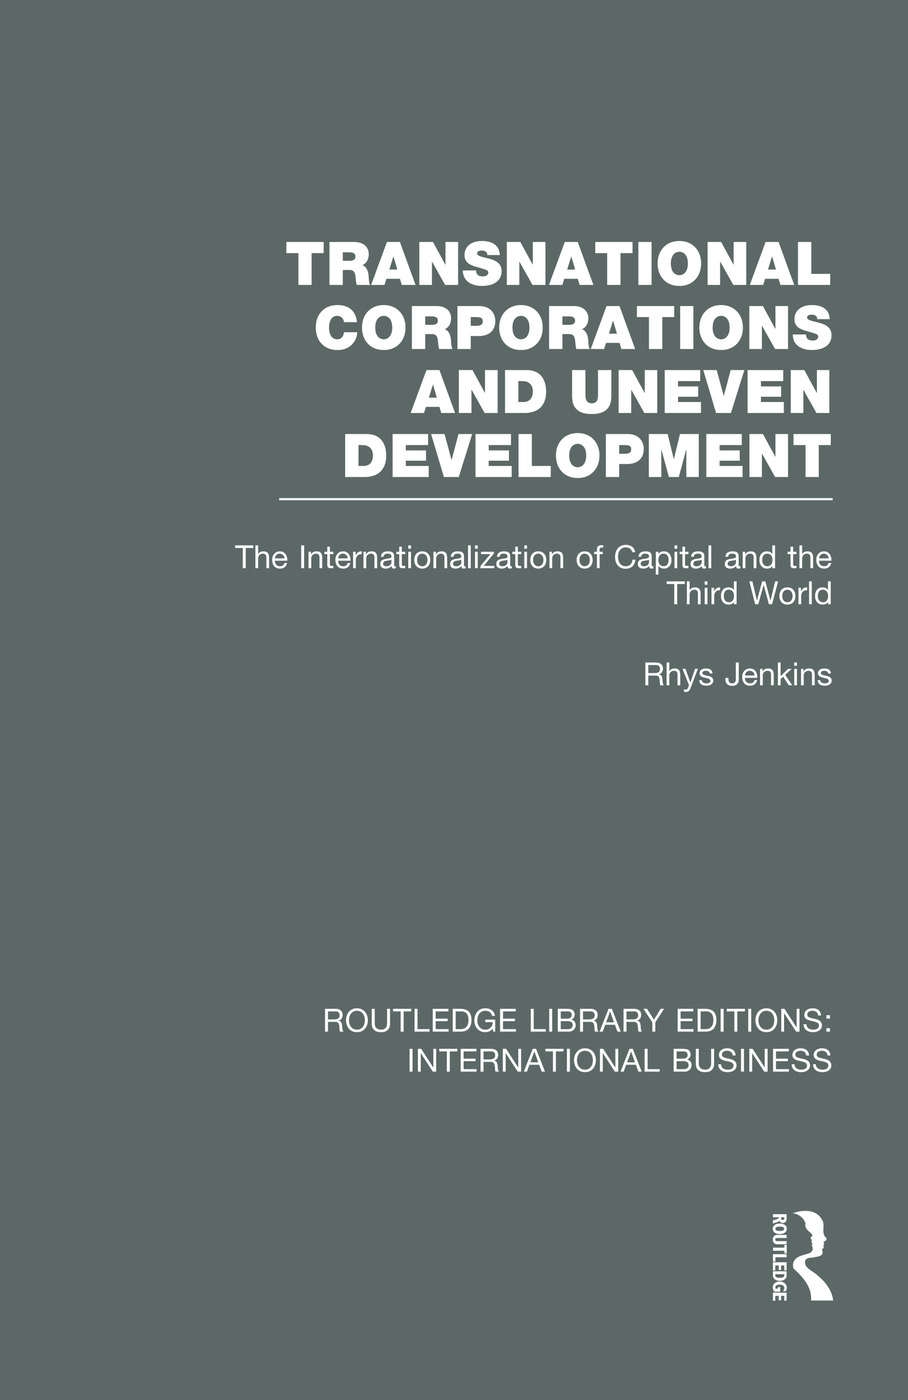 Transnational Corporations and Uneven Development (RLE International Business): The Internationalization of Capital and the Third World book cover